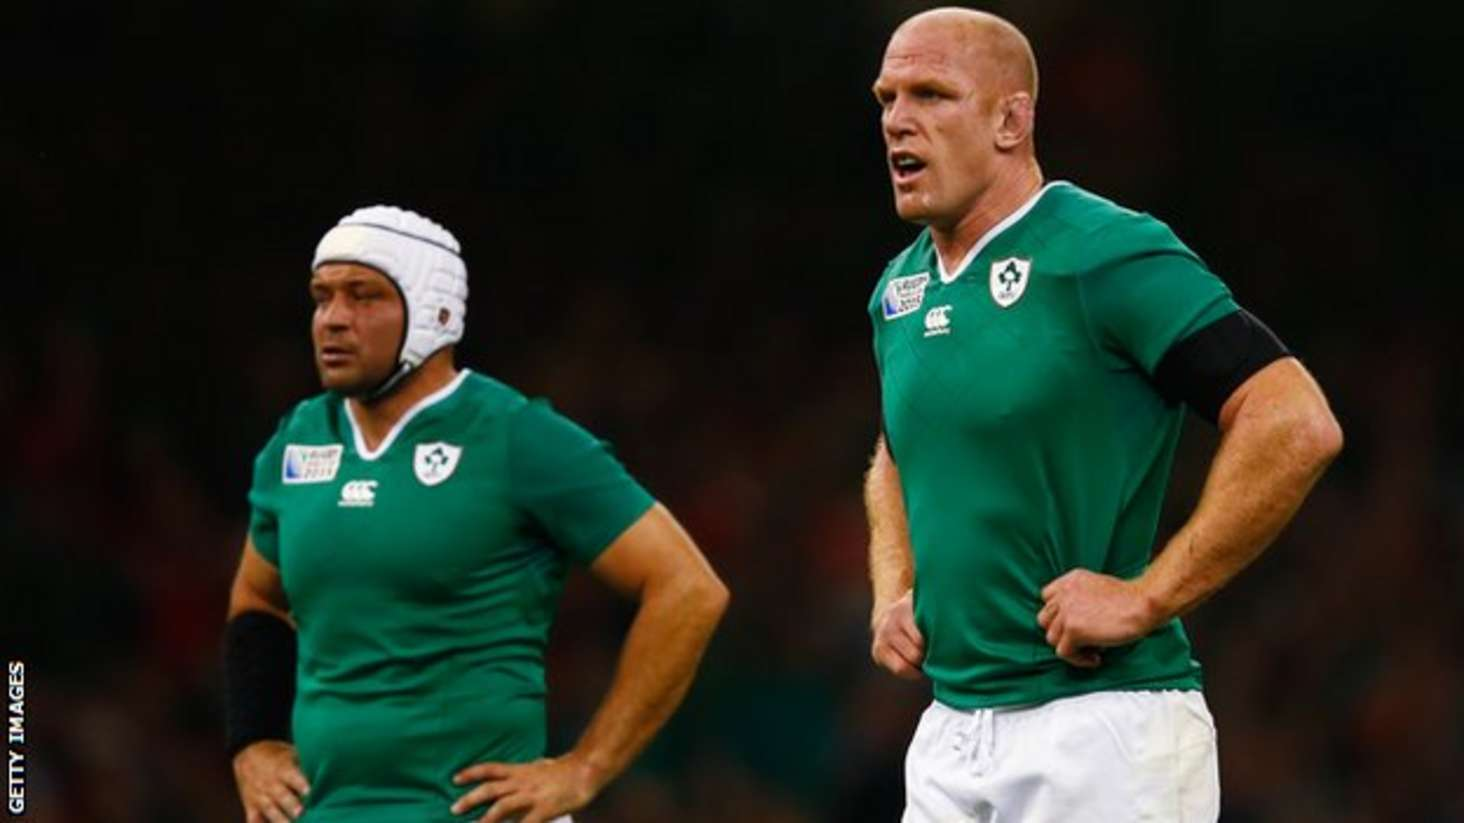 Rory Best and Paul O'Connell